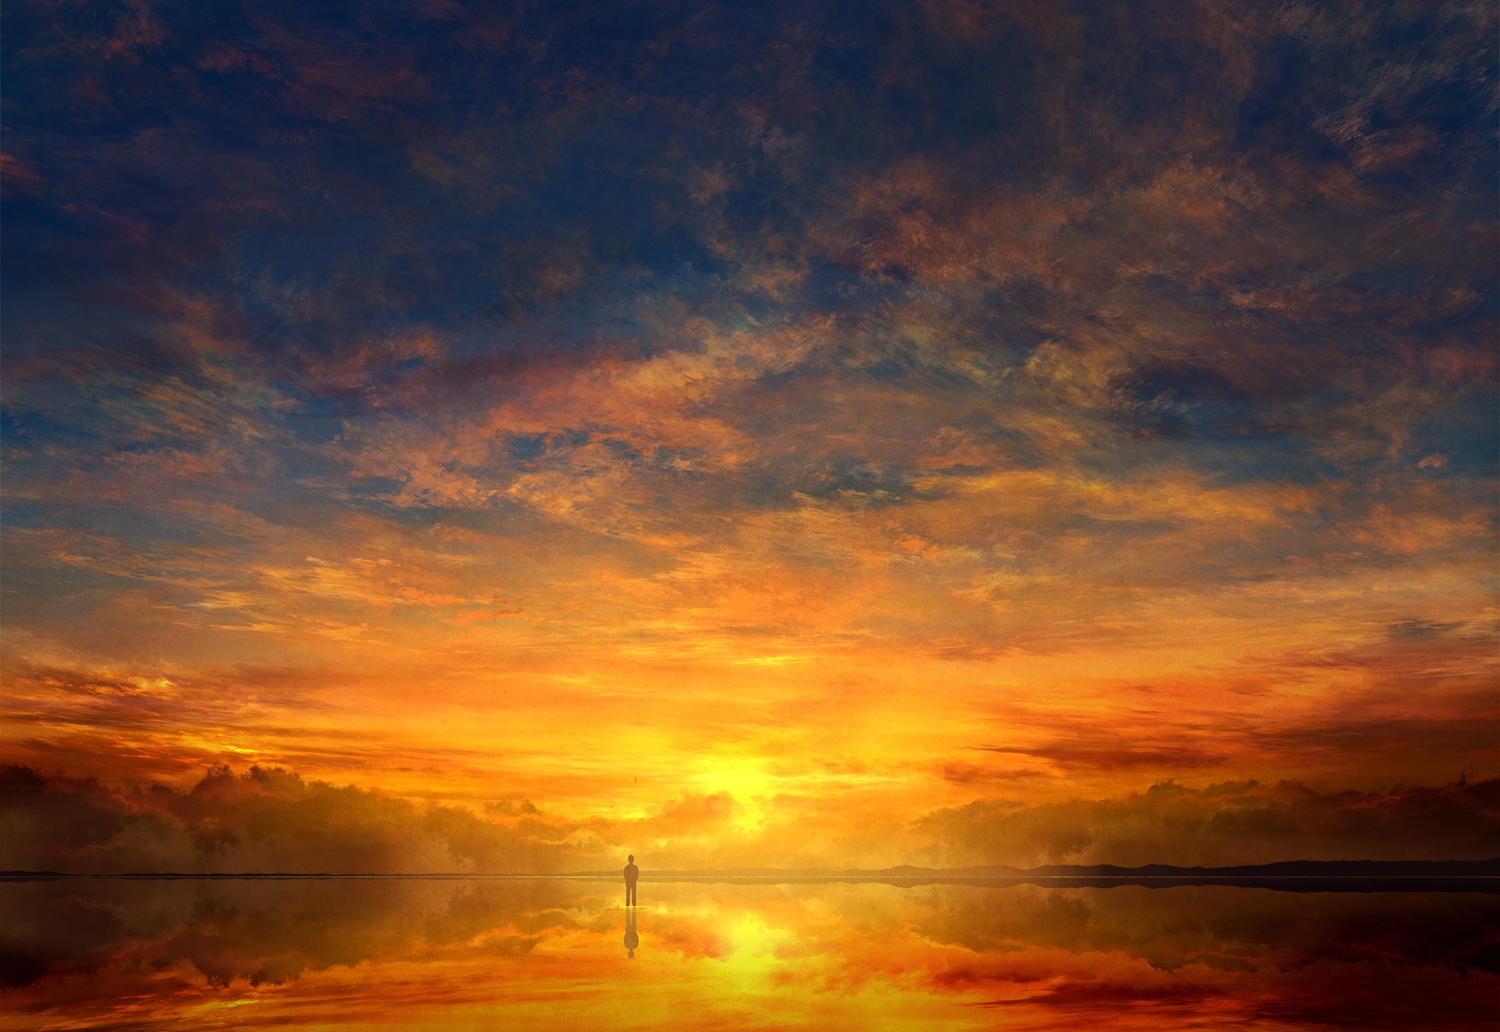 clouds mks original reflection scenic silhouette sky sunset